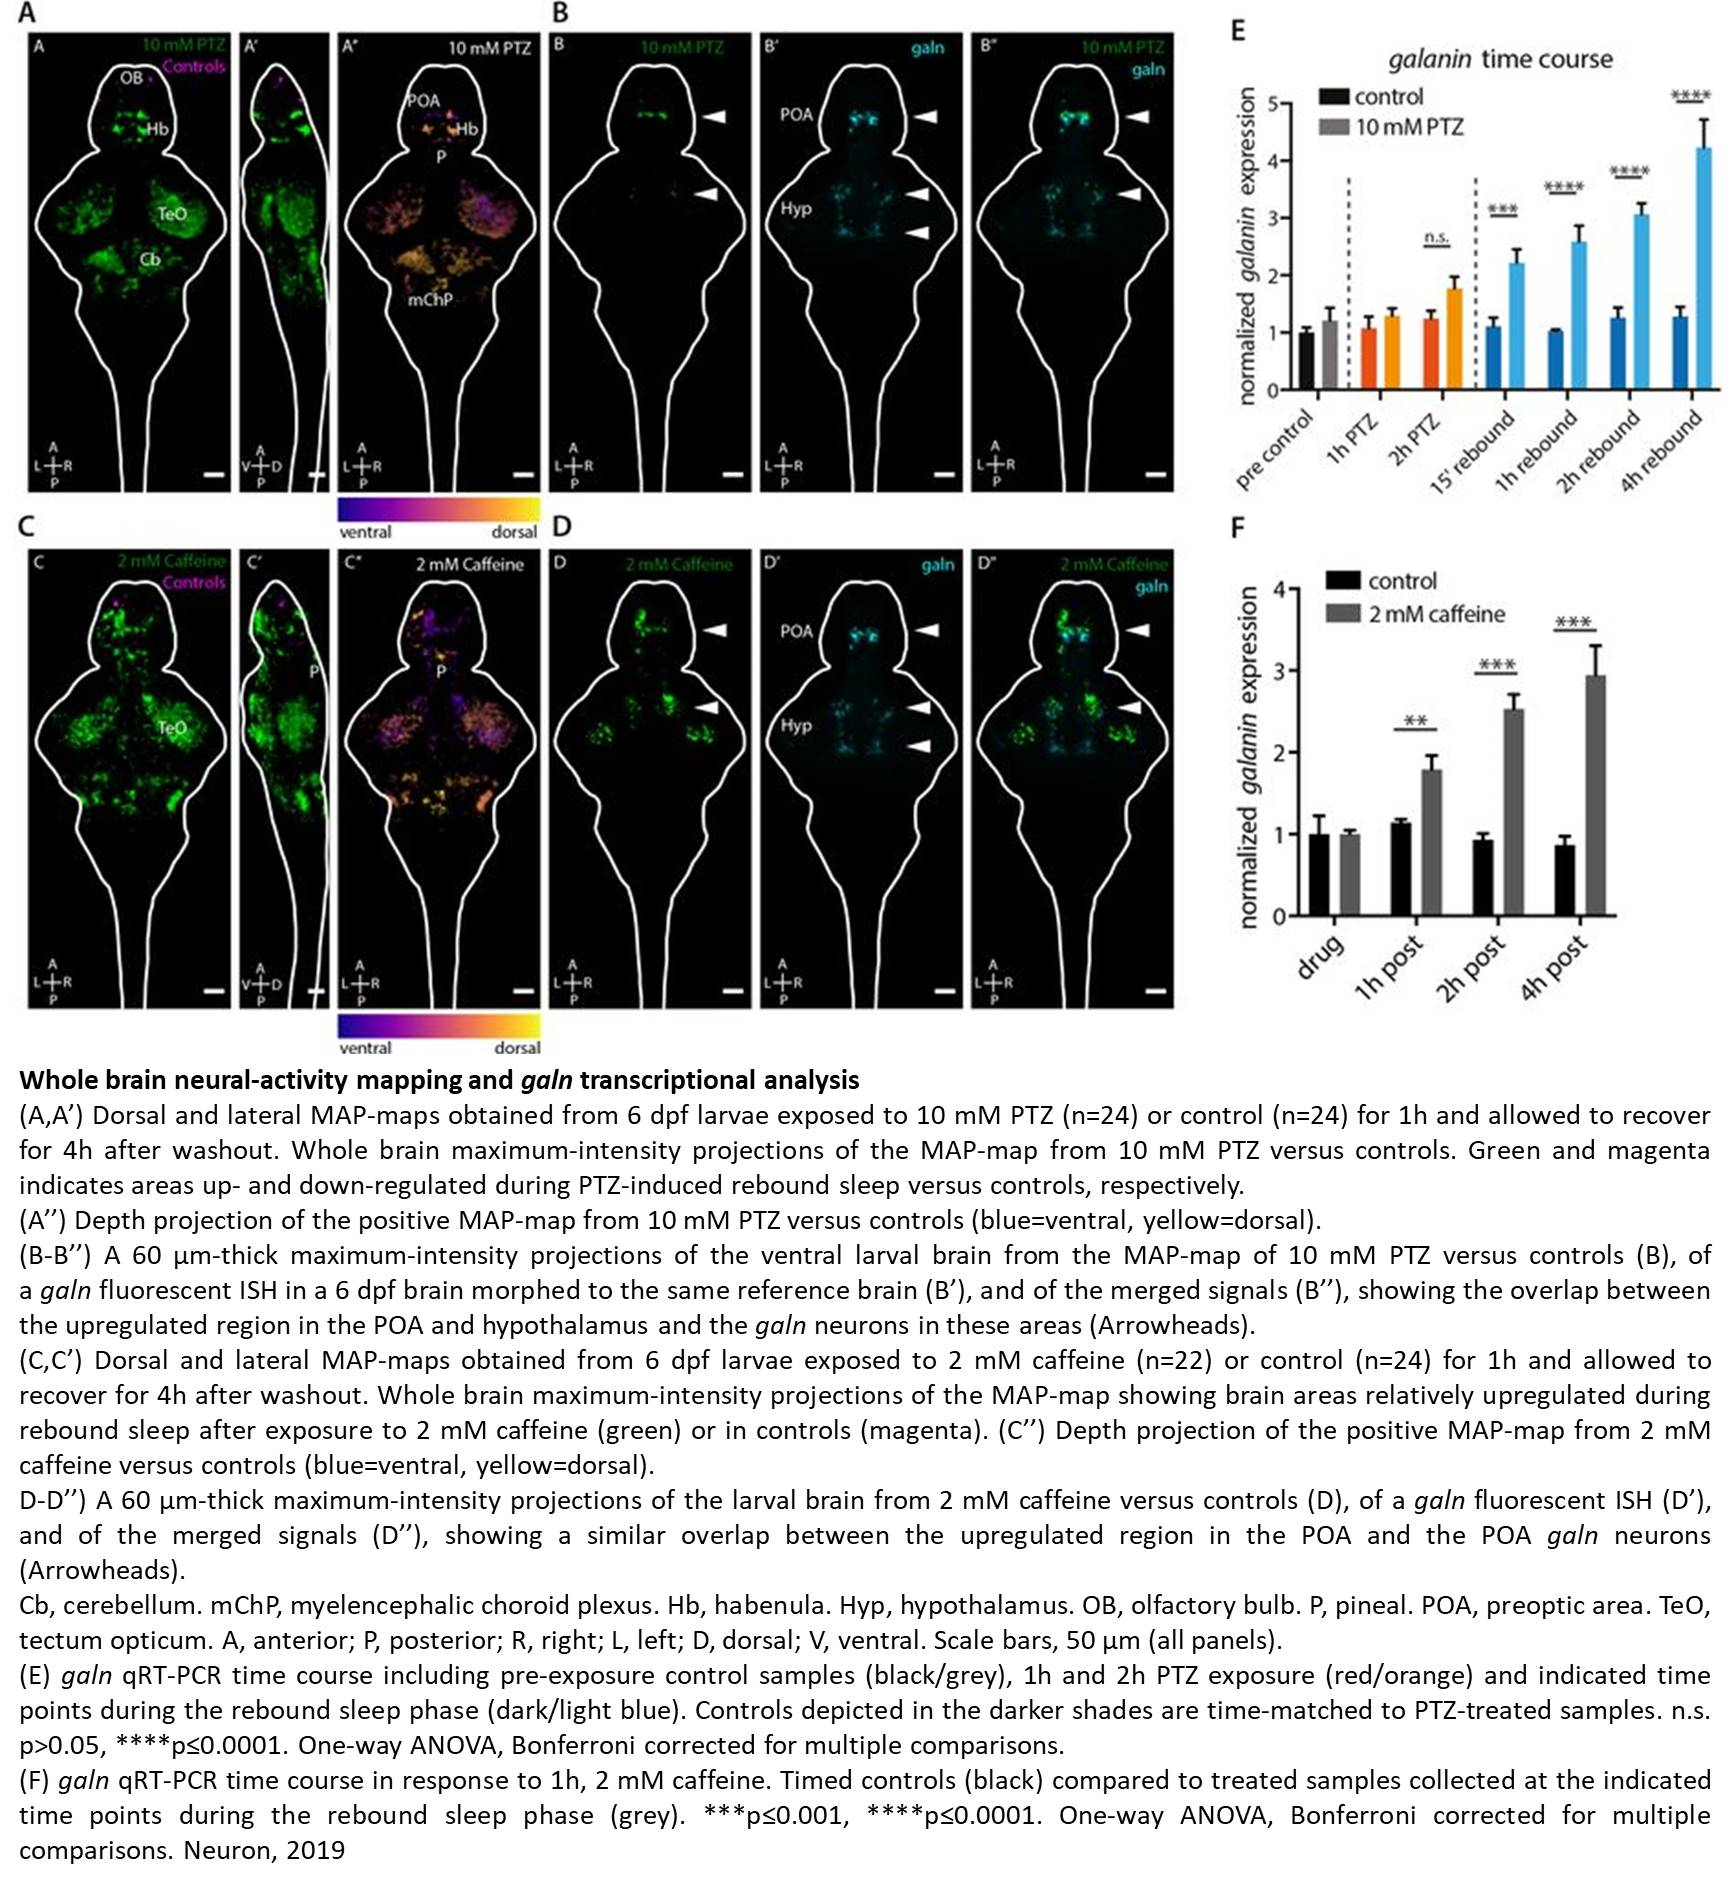 Sleep rebound following increased neuronal activity is linked to a neuropeptide,  galanin